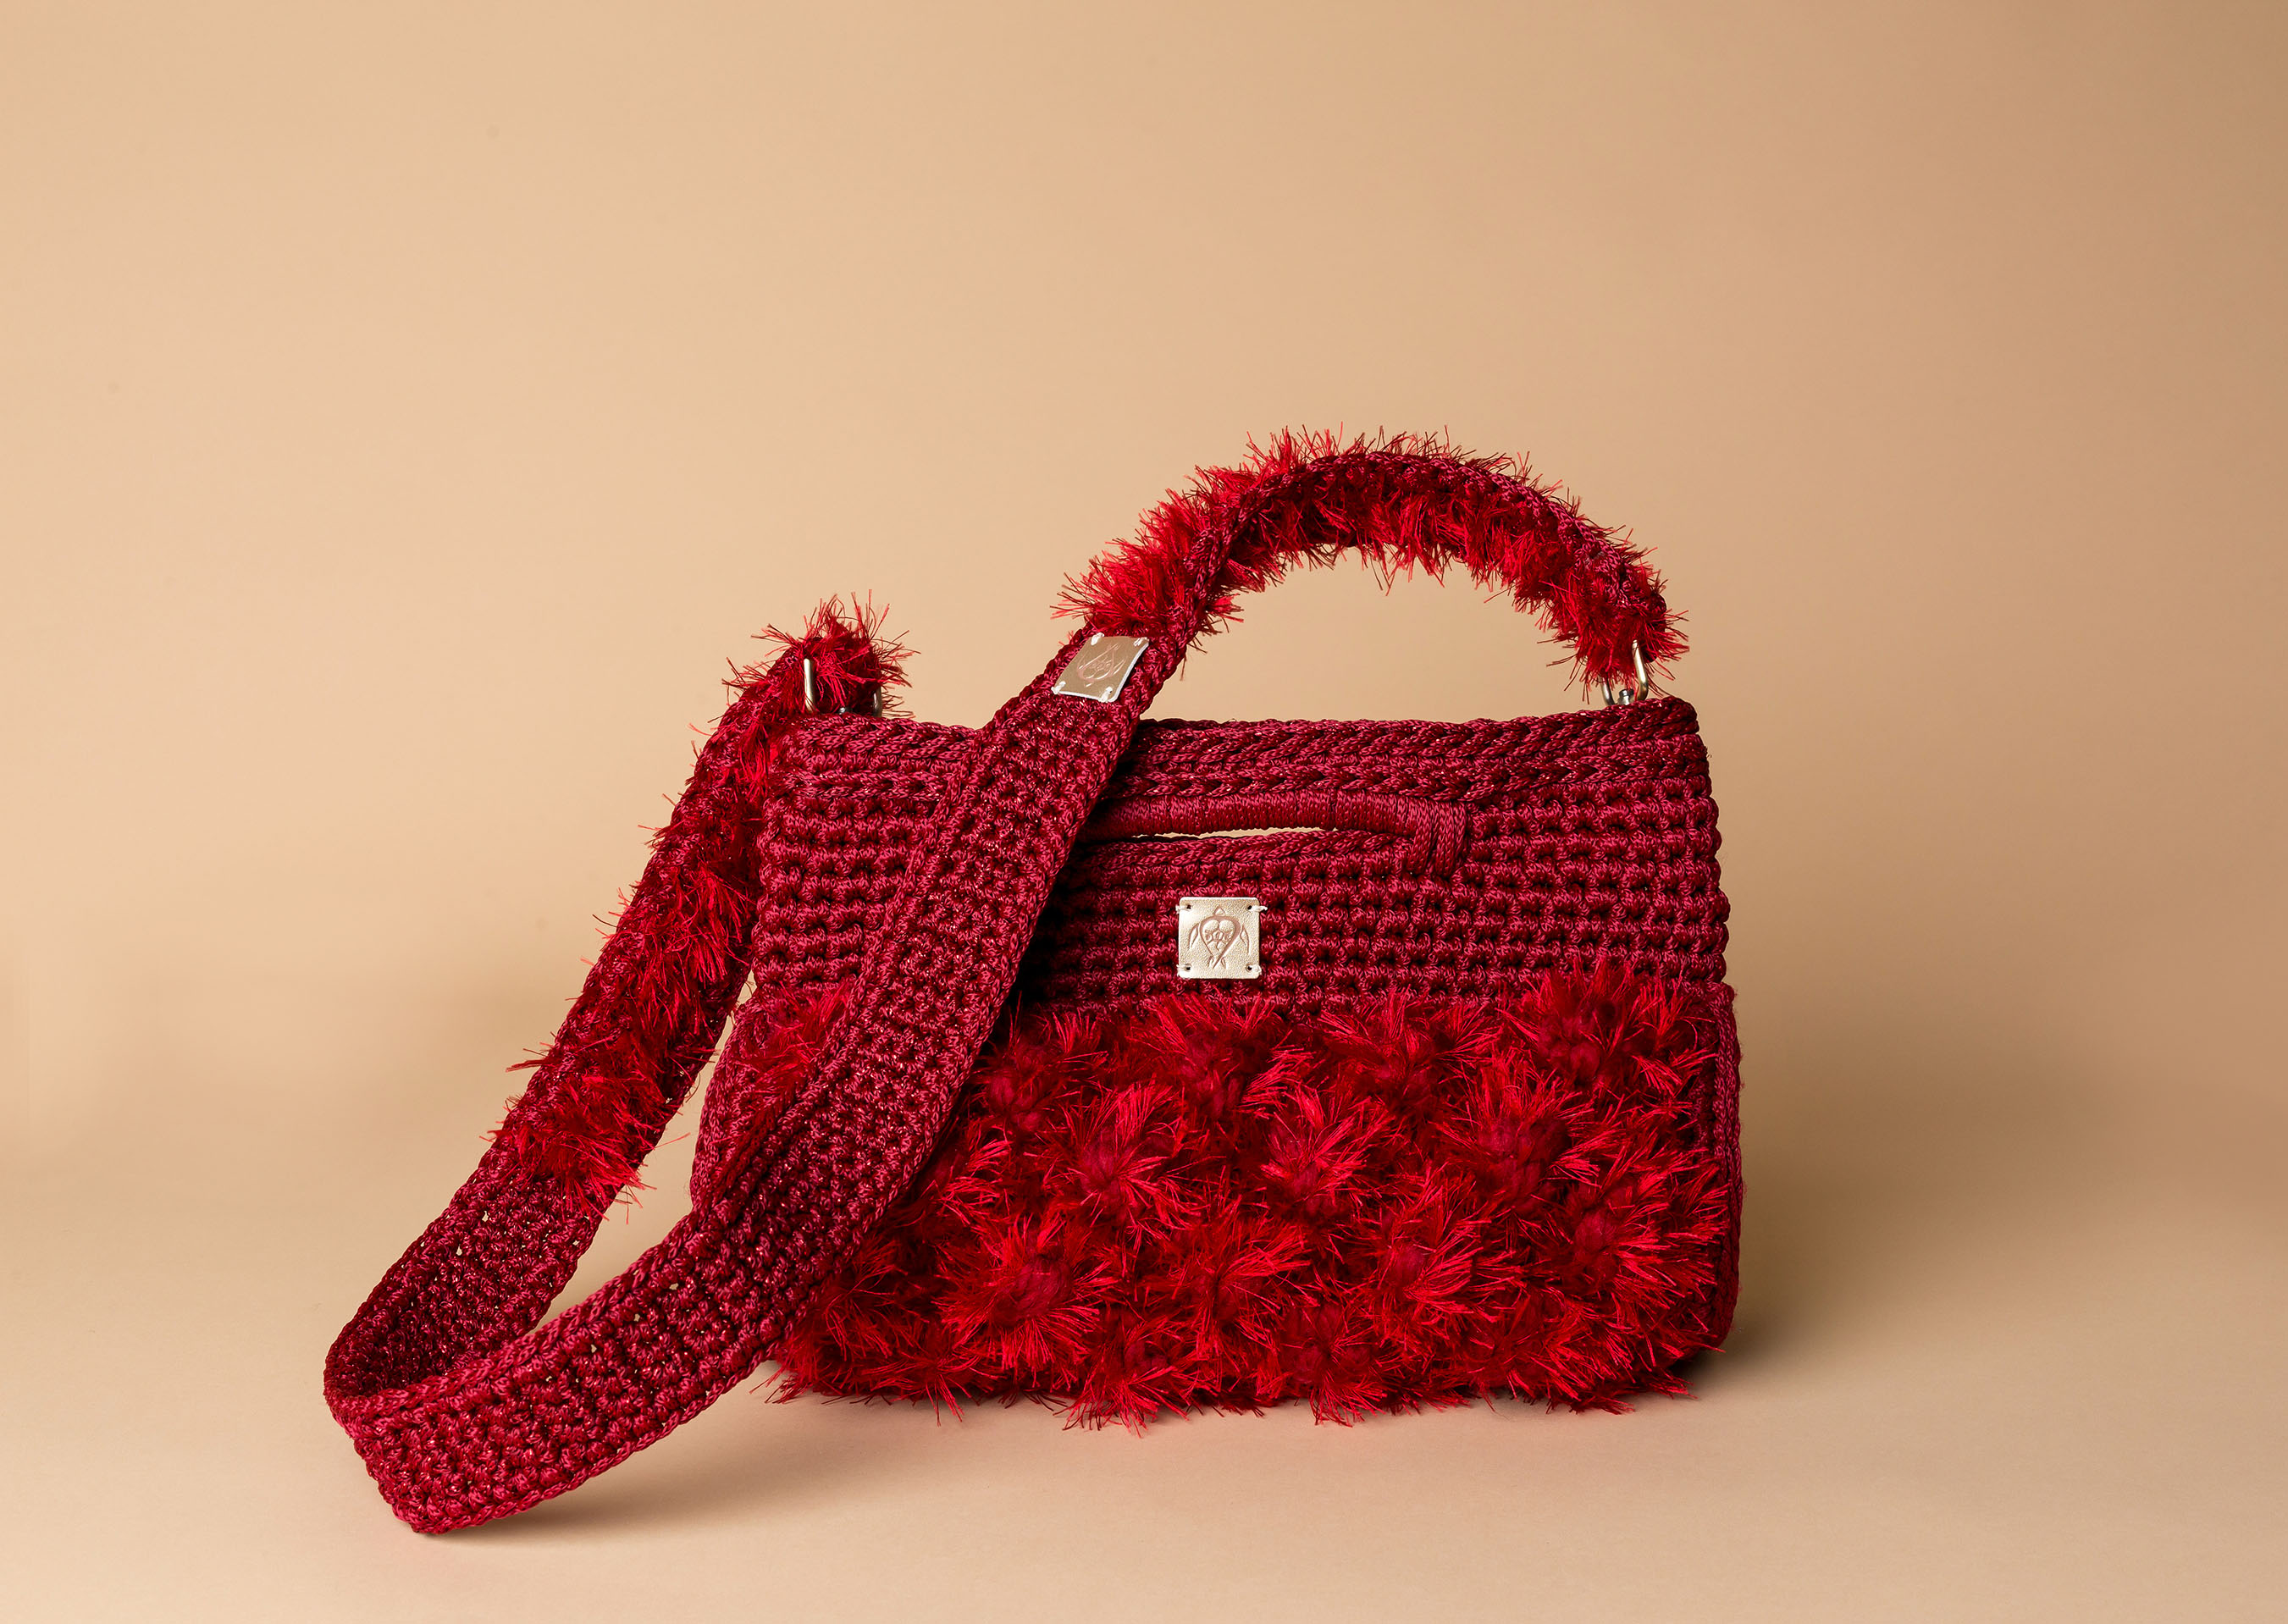 knitted handbag in red